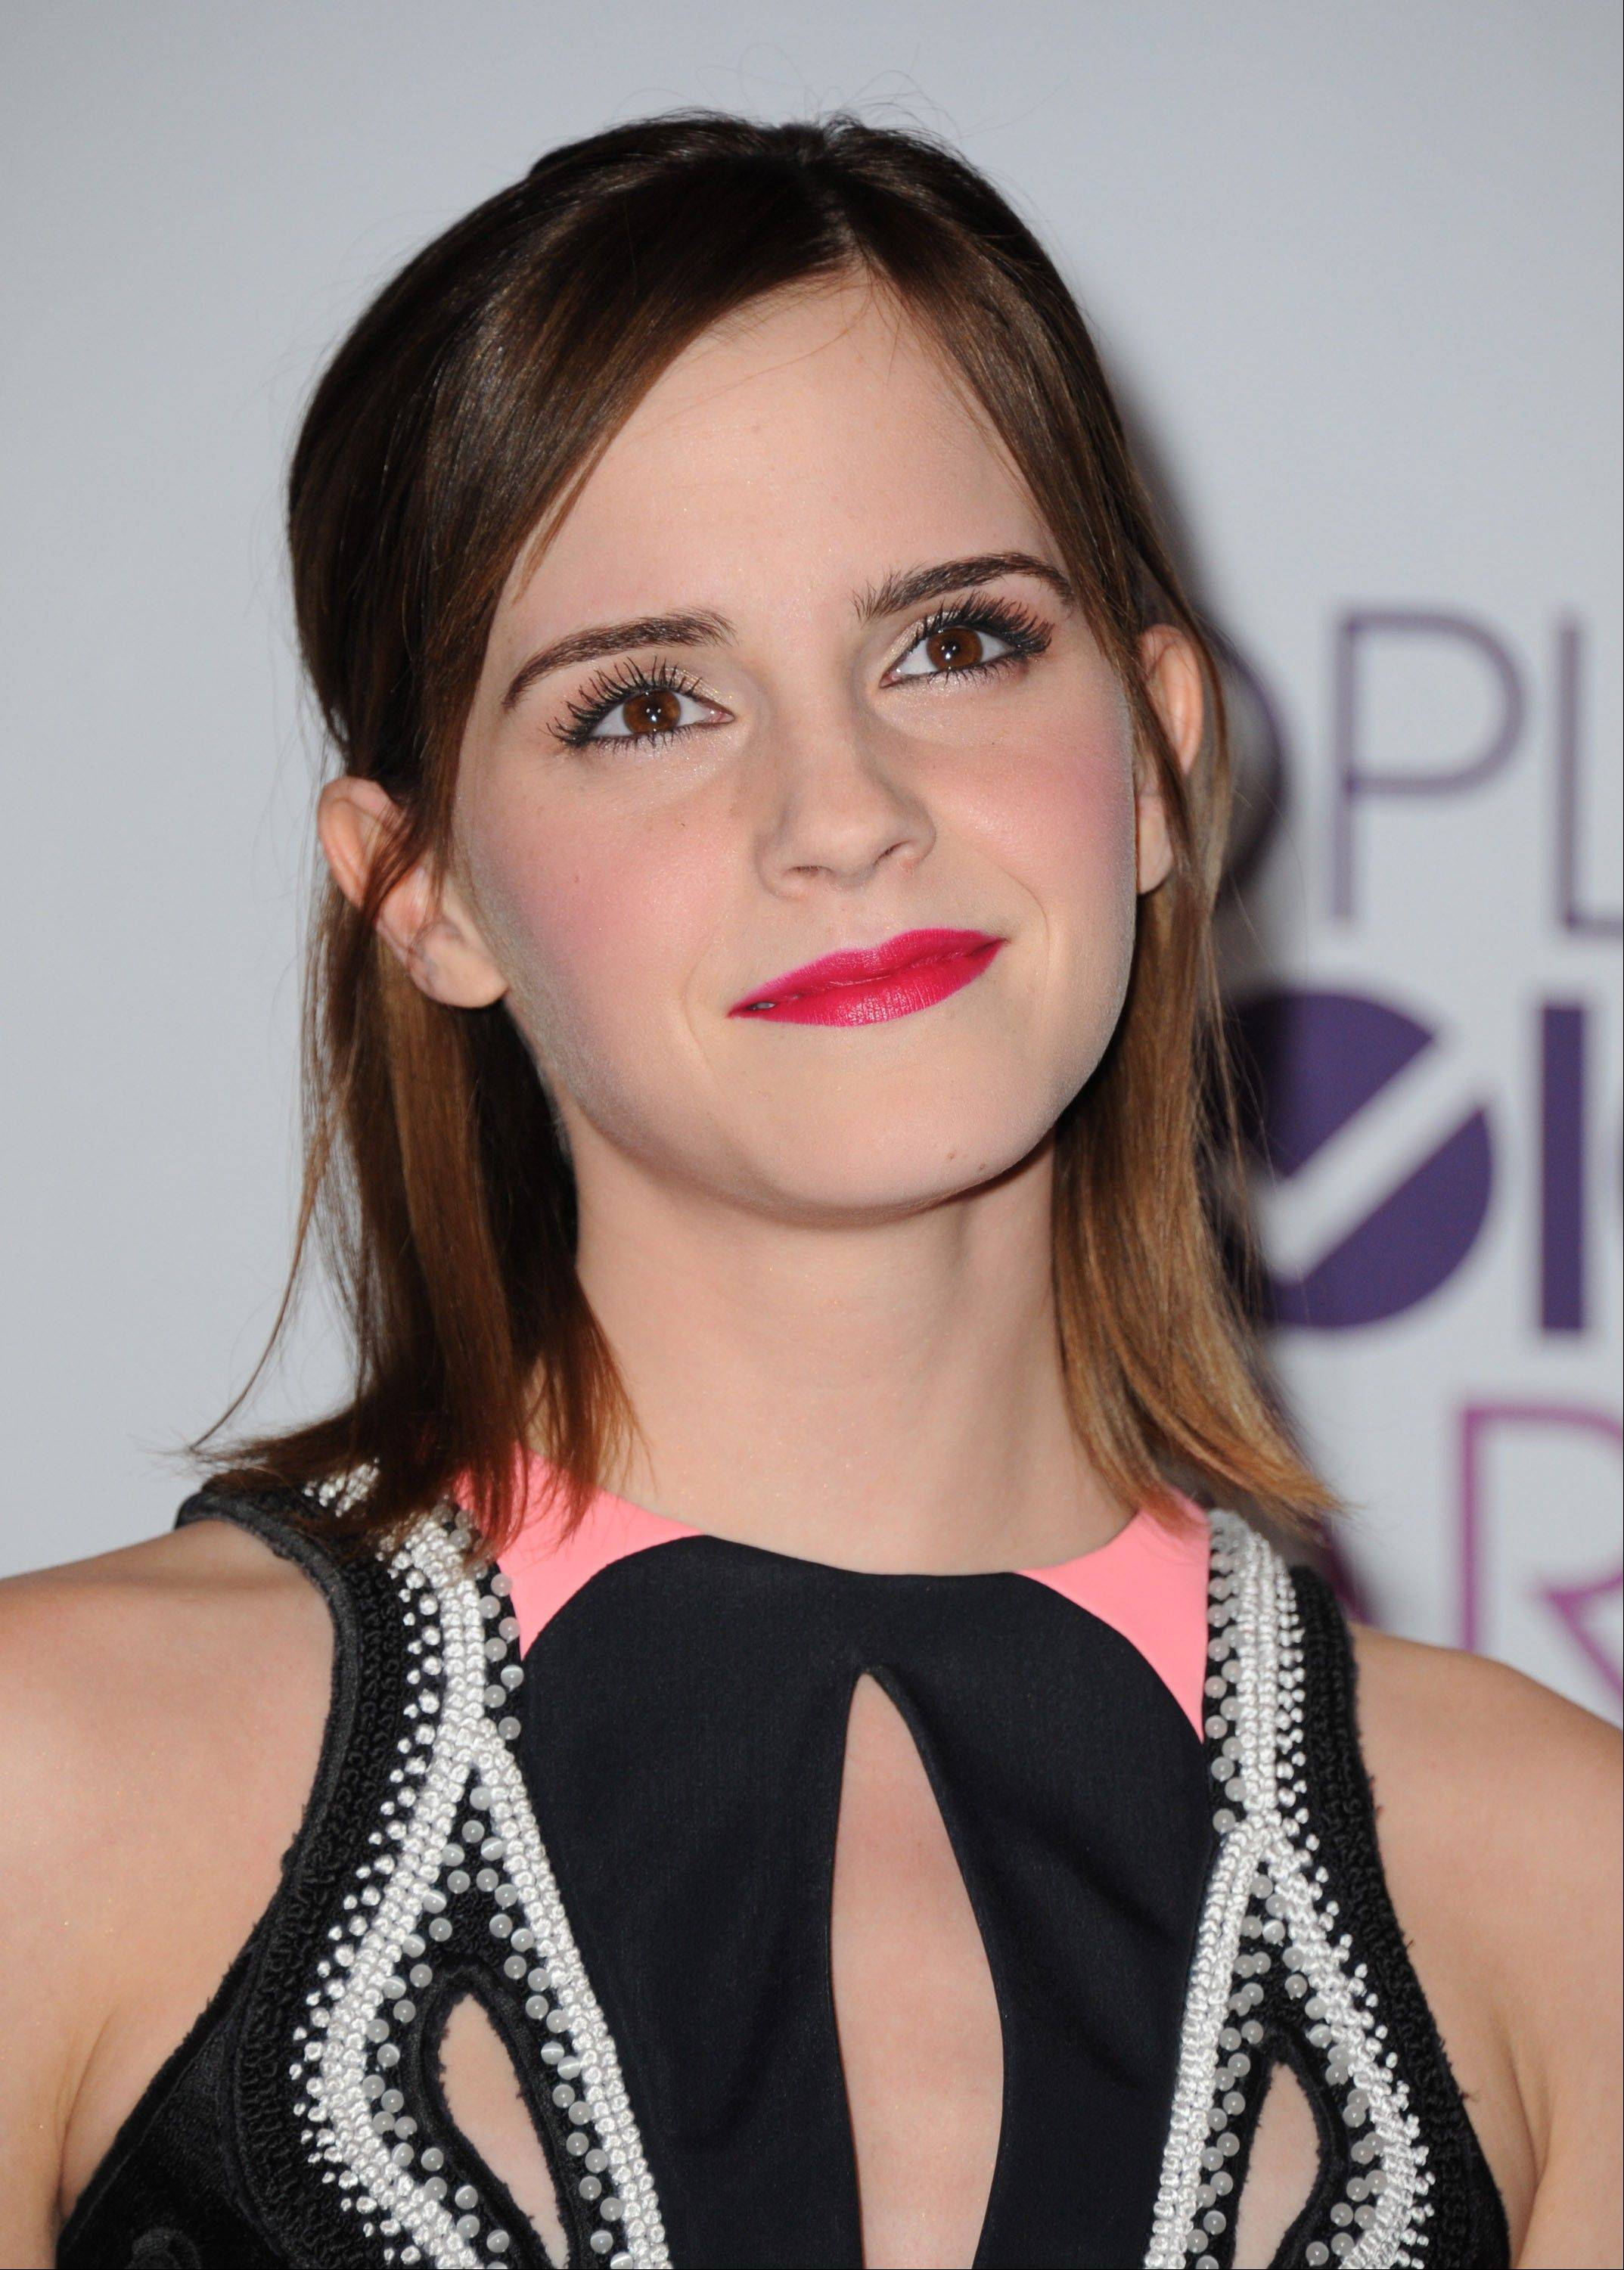 Emma Watson poses backstage with the award for favorite dramatic movie actress at the People's Choice Awards at the Nokia Theatre on Wednesday Jan. 9, 2013, in Los Angeles.